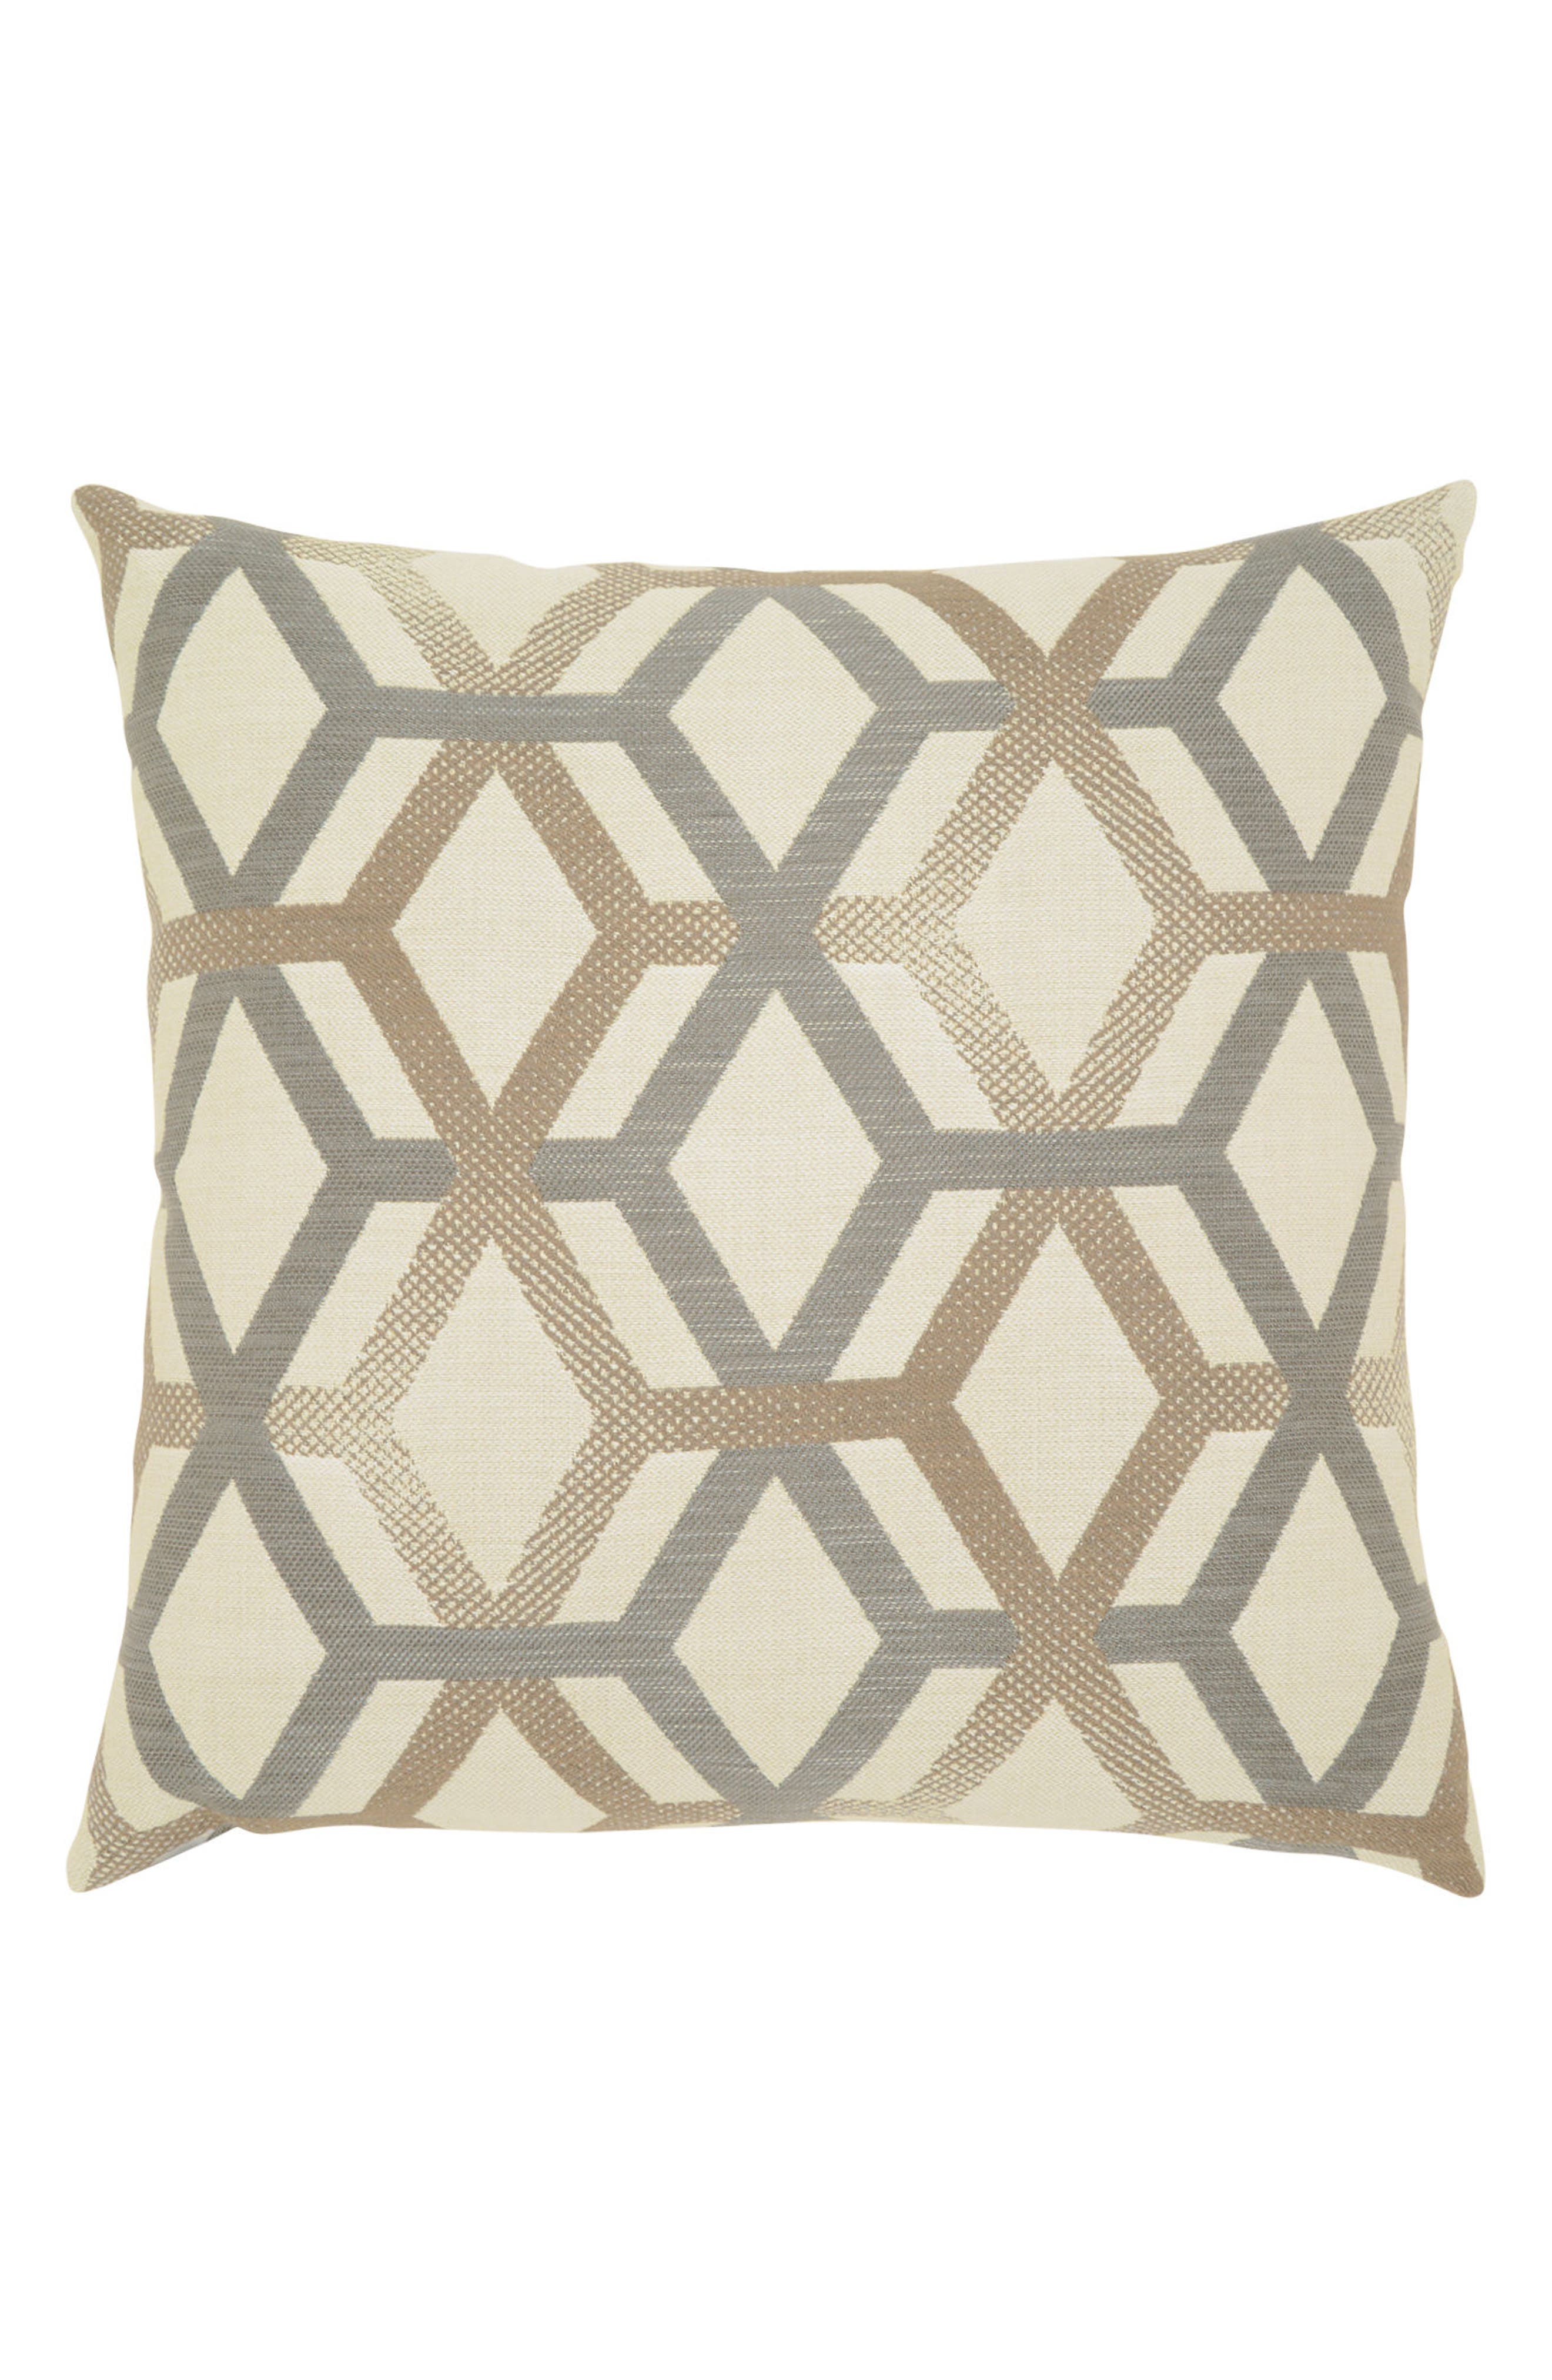 Alternate Image 1 Selected - Elaine Smith Lustrous Lines Indoor/Outdoor Accent Pillow